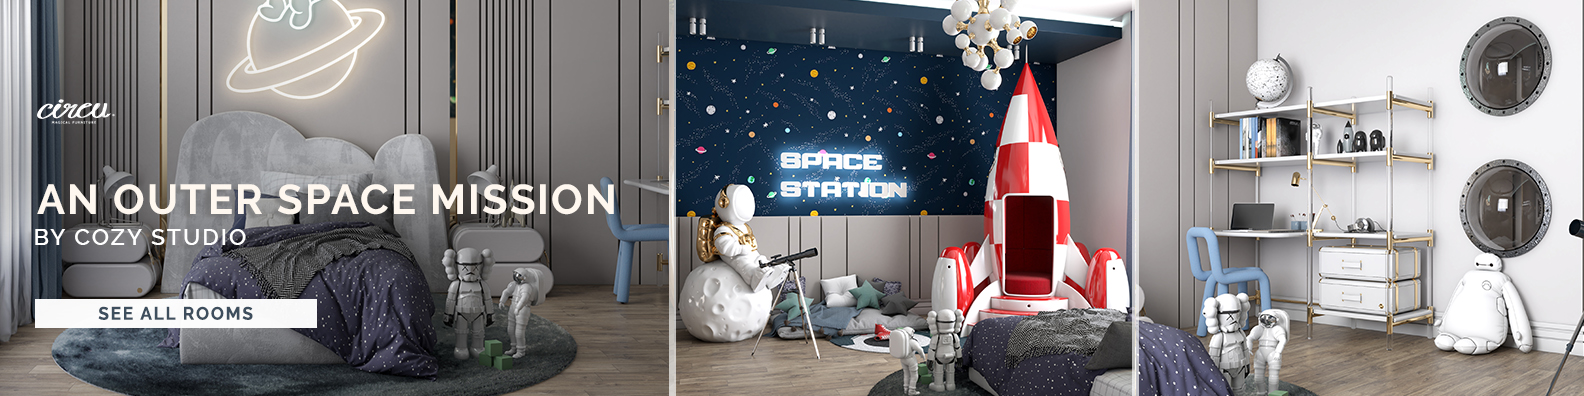 an outer space mission circu